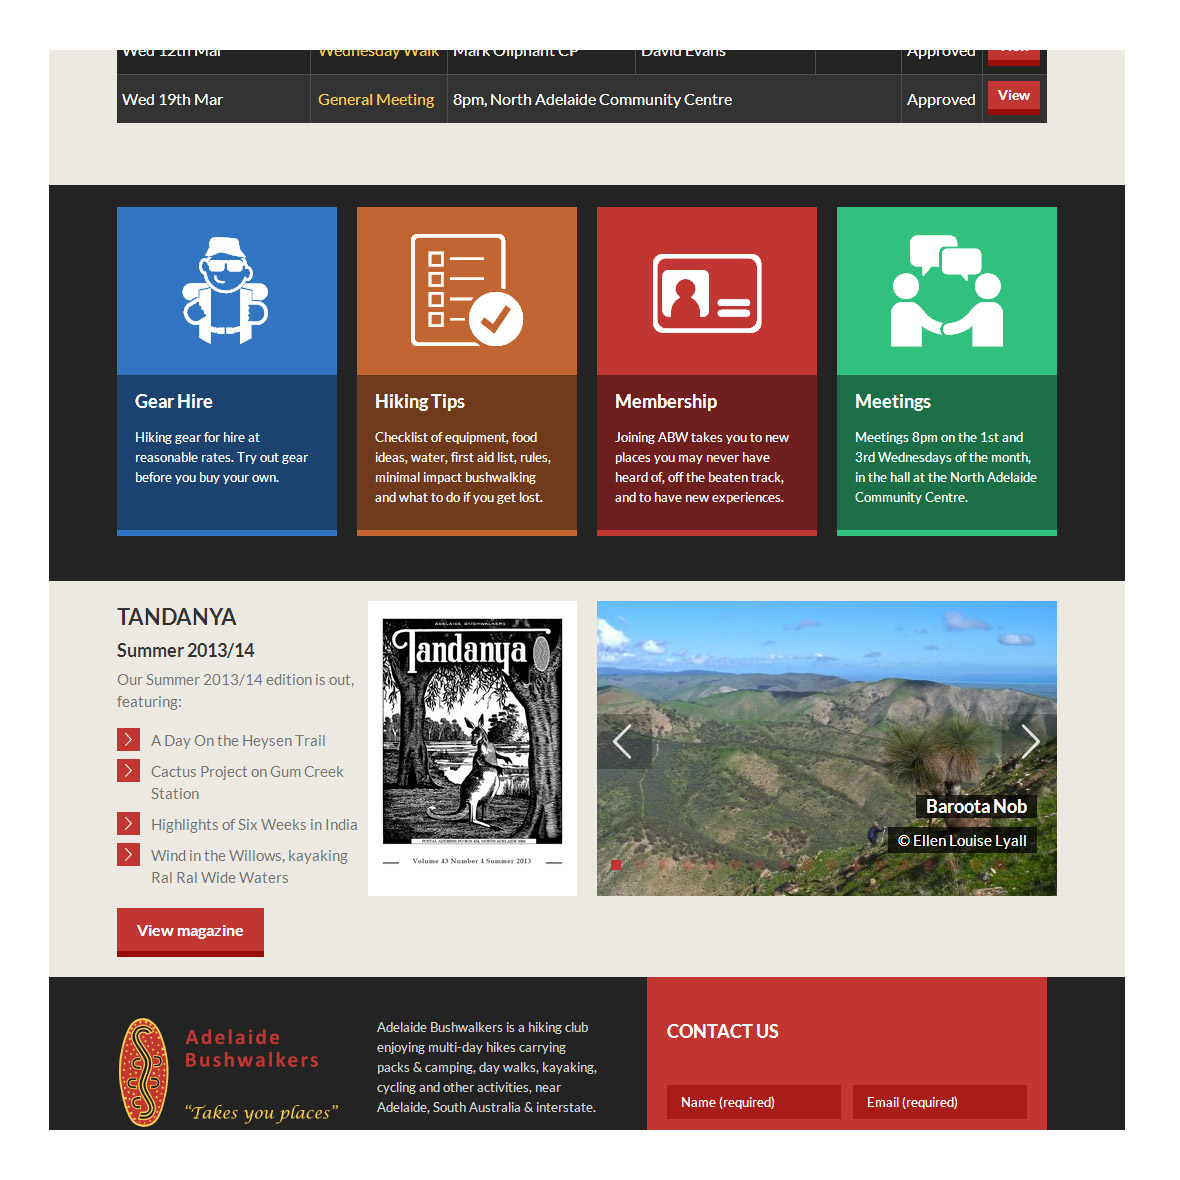 The website design directs people to key content